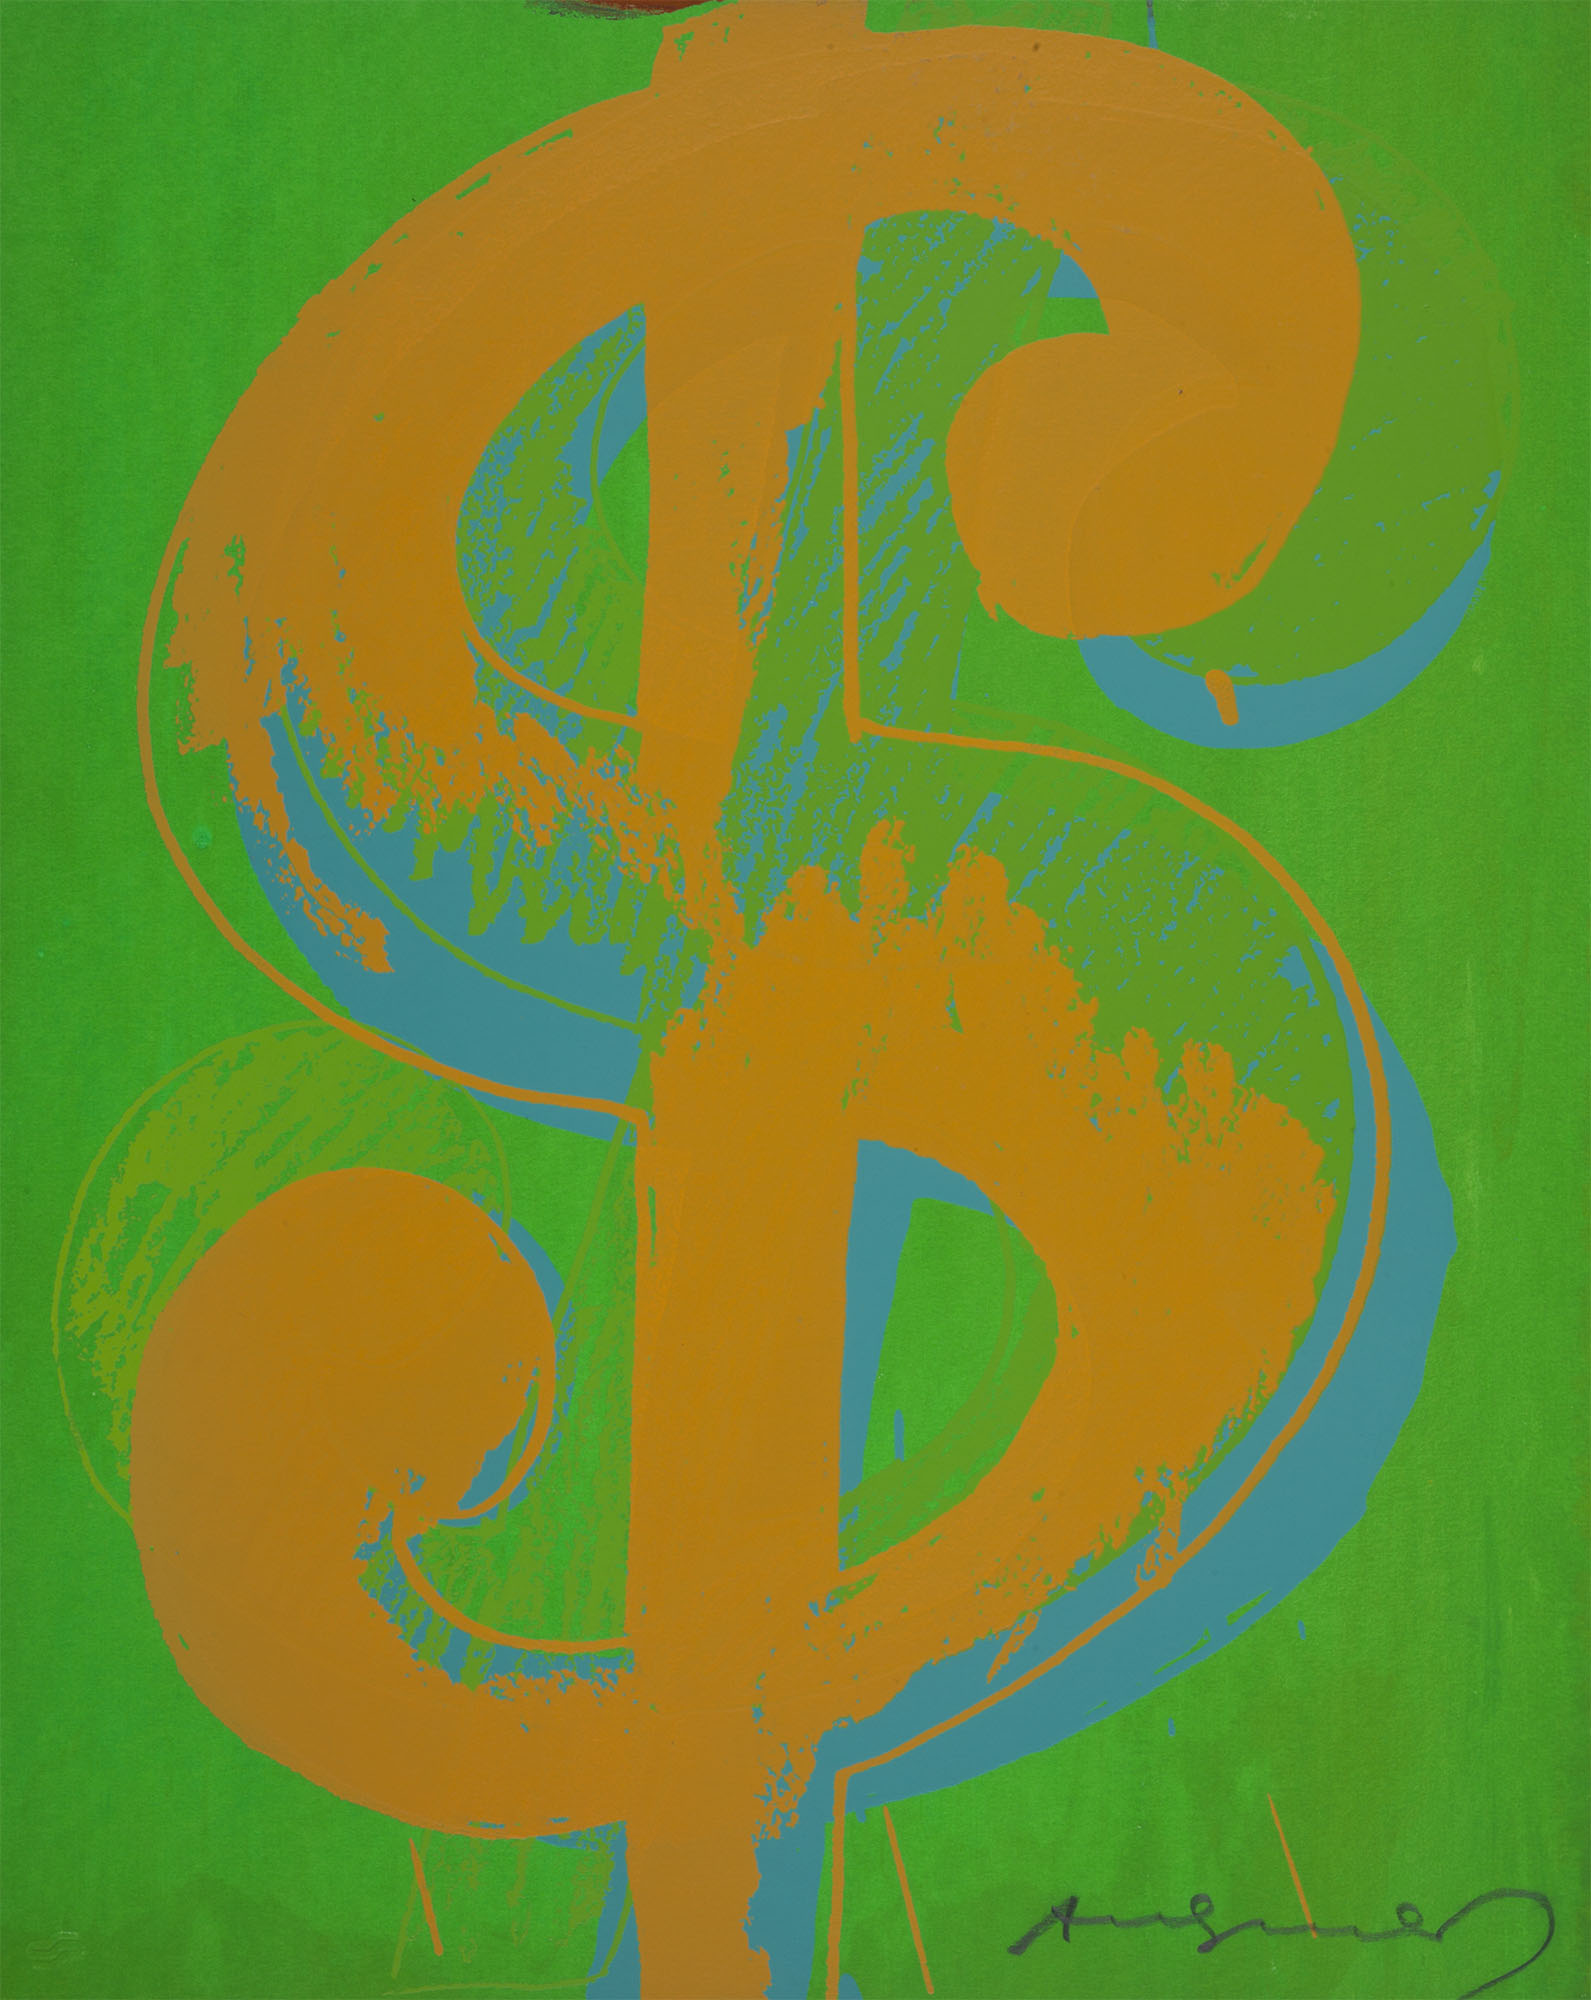 Andy Warhol, $1, 1982. Screenprint on Lenox Museum Board. Collection of DePaul Art Museum, extra, out of edition. Designated for research and educational purposes only. © The Andy Warhol Foundation for the Visual Arts, Inc., 2013.38